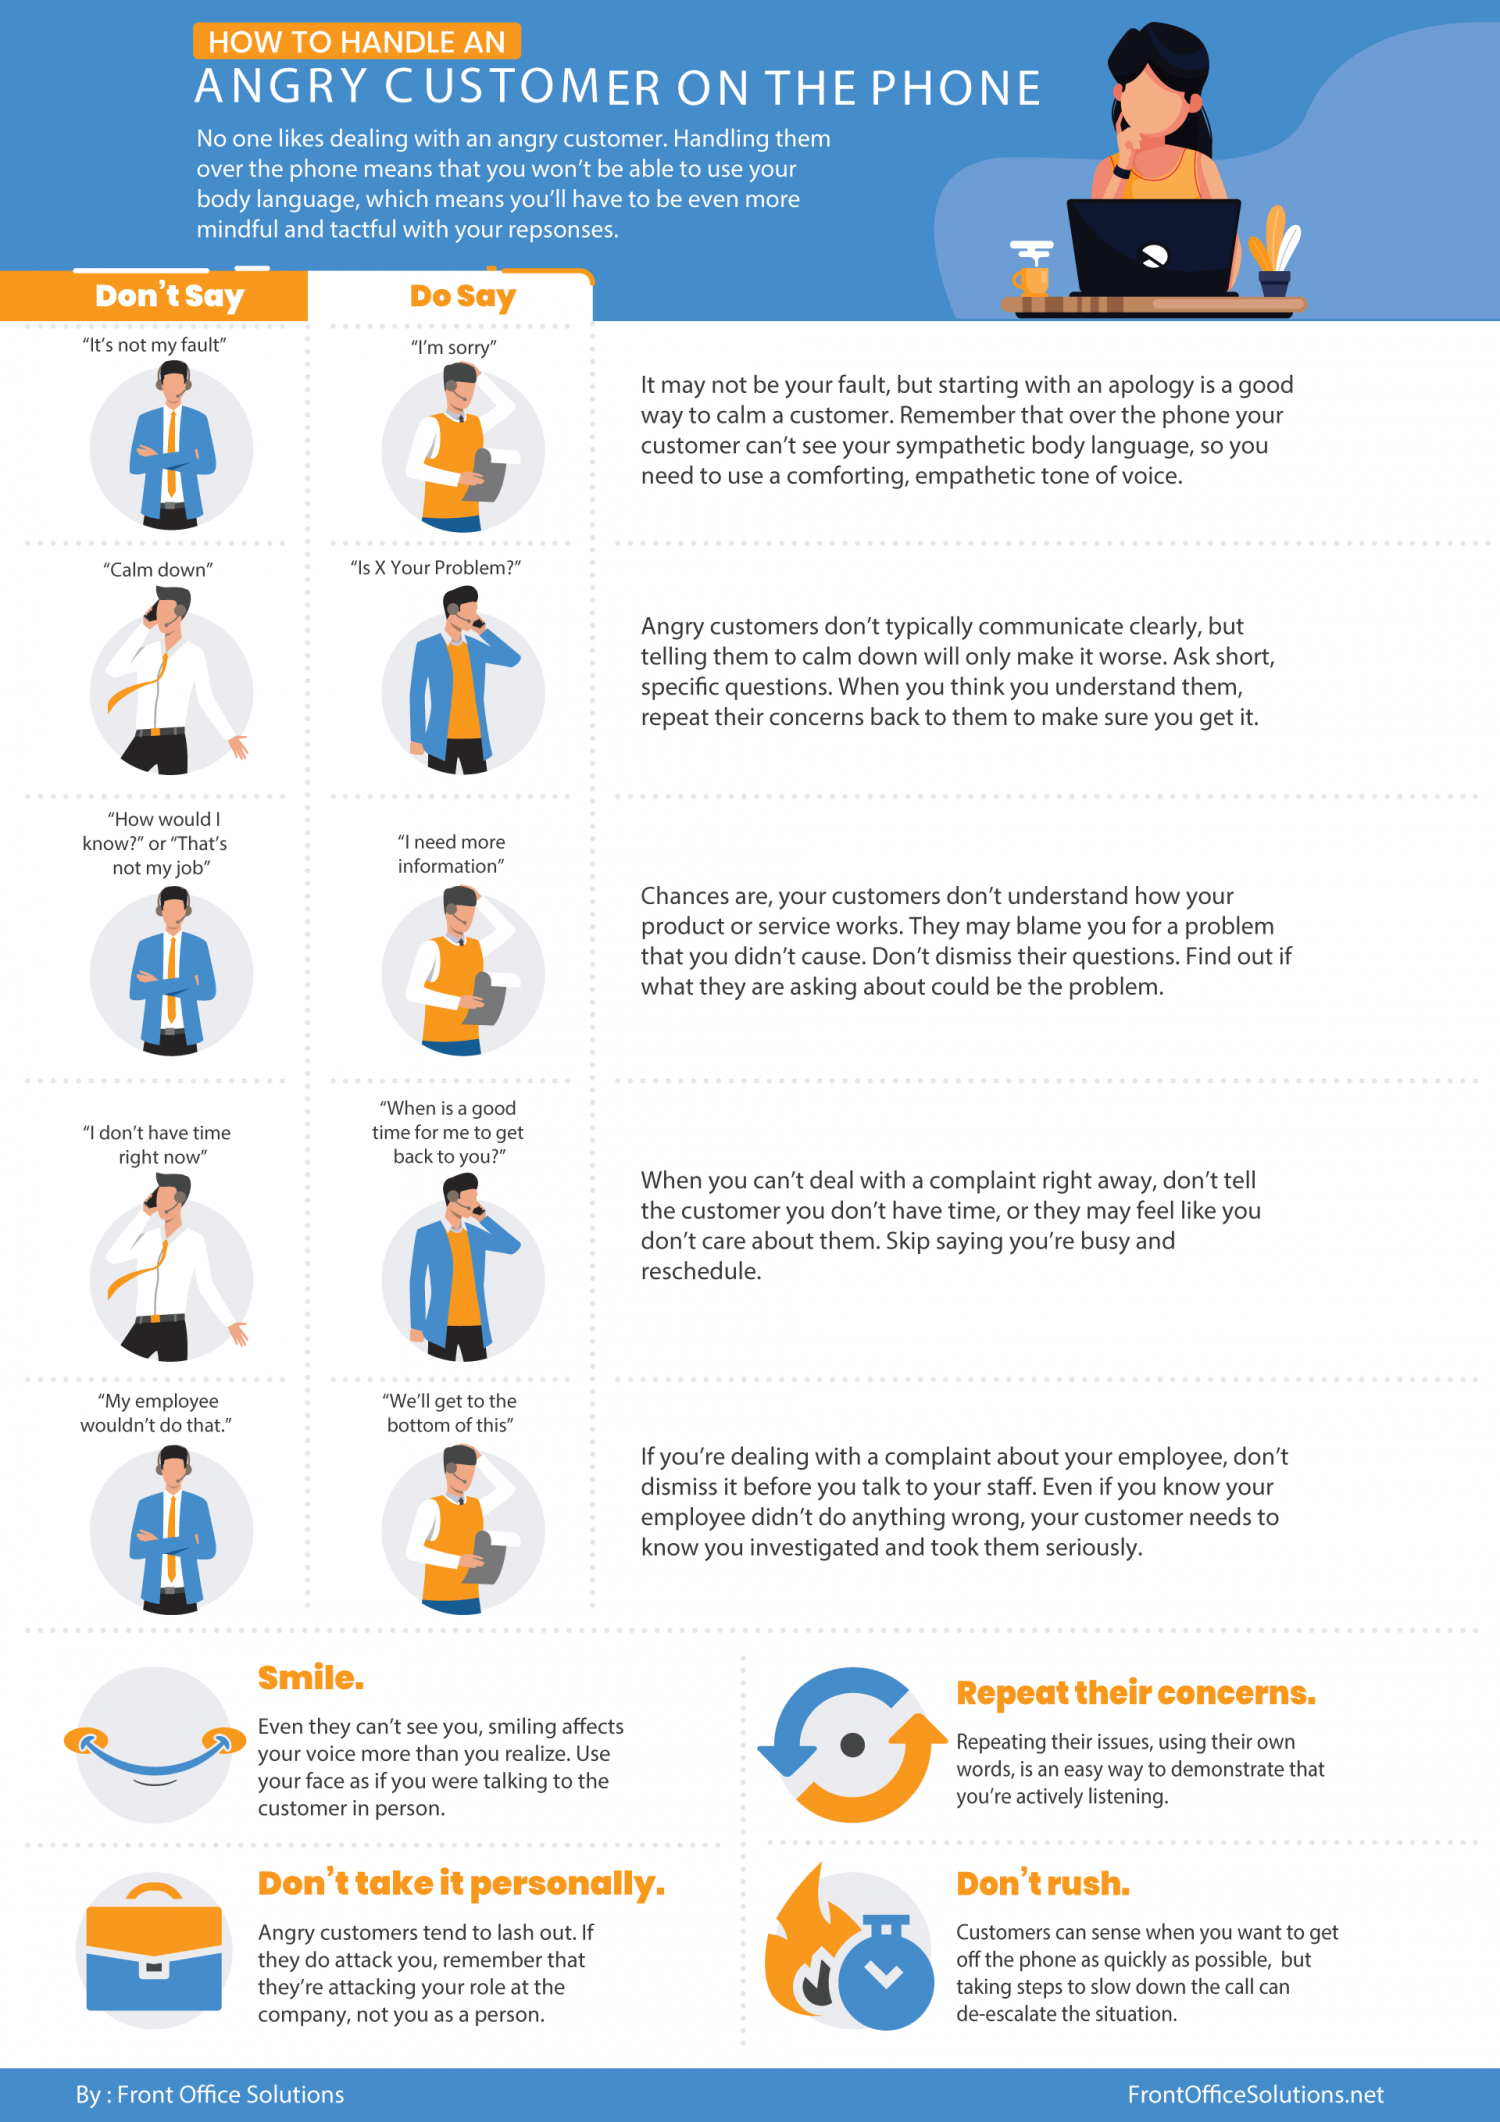 How to Handle an Angry Customer on the Phone Infographic